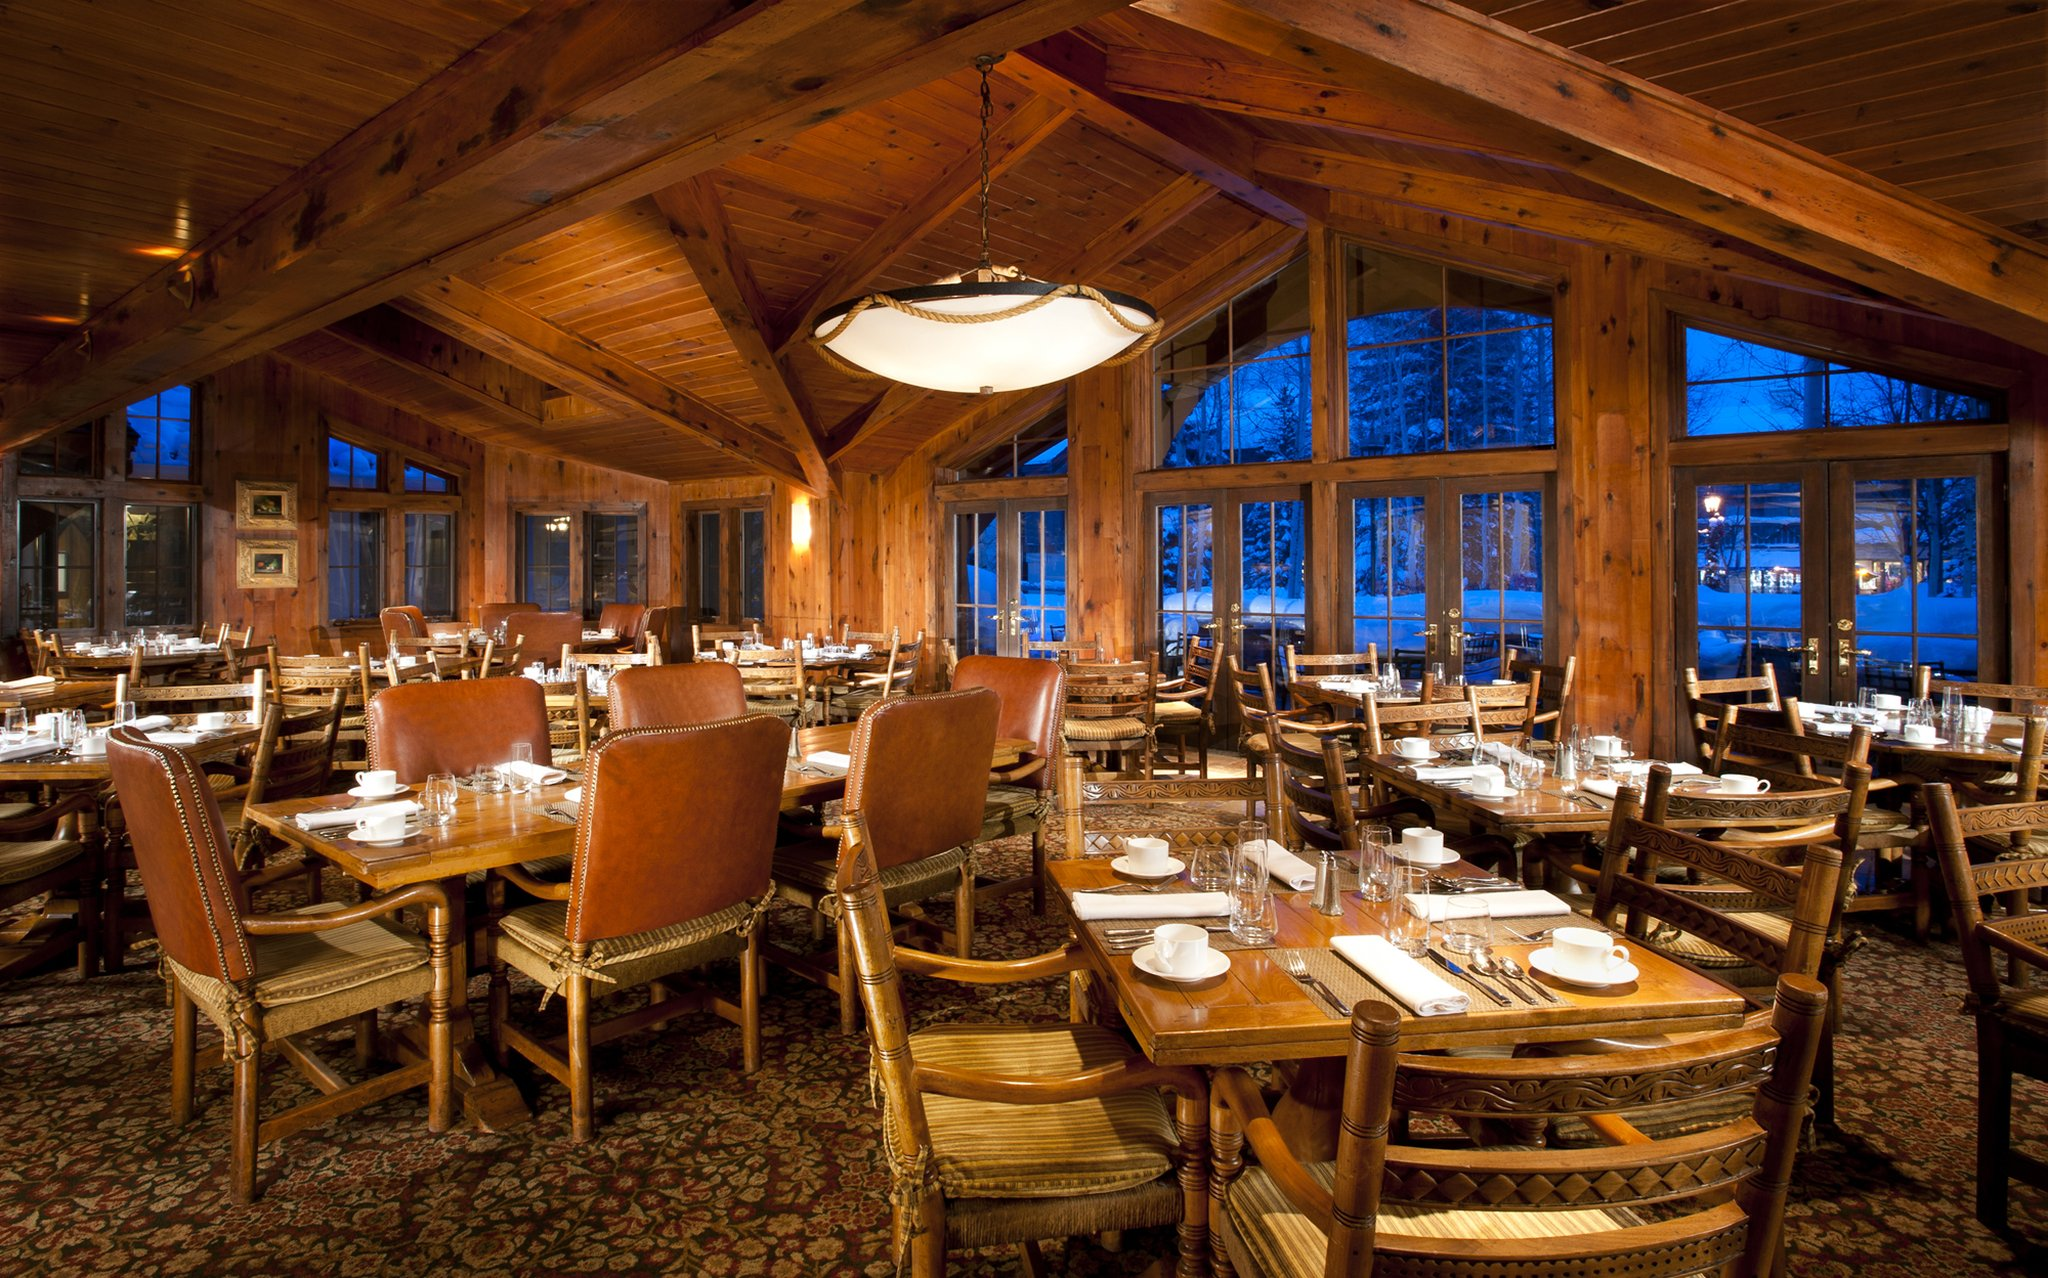 Cucina Rustica Vail Meetings And Events At The Lodge At Vail A Rockresort Vail Co Us